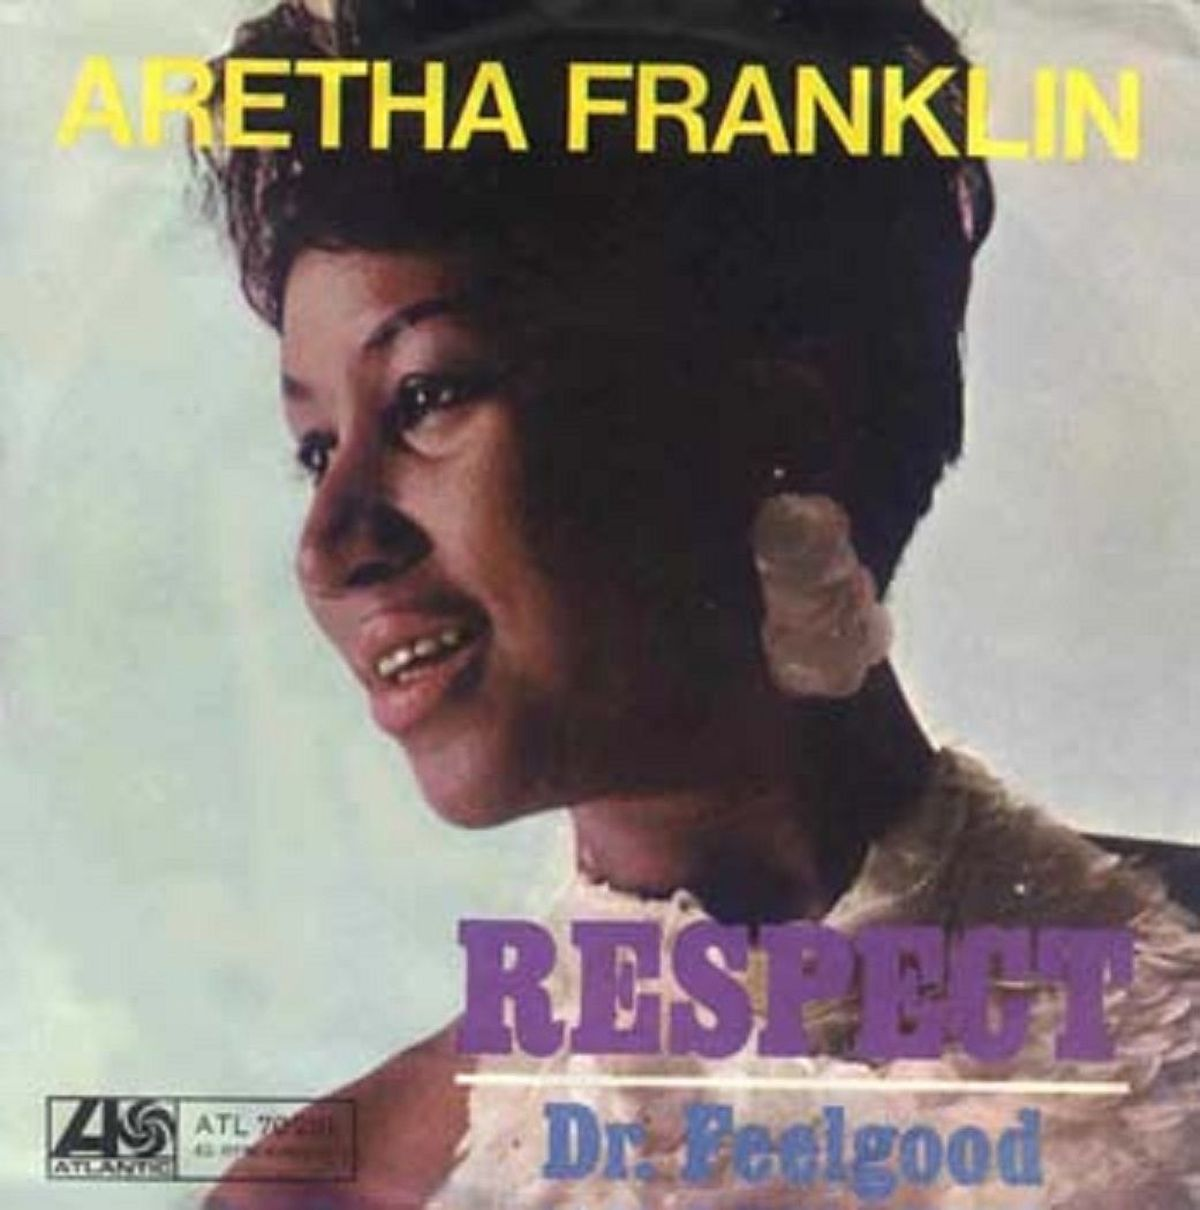 music analysis on respect by aretha franklin Franklin's usual song formula is an analysis of a romantic relationship dynamic, but like respect, the subject matter can be applied to anything that's oppressive.